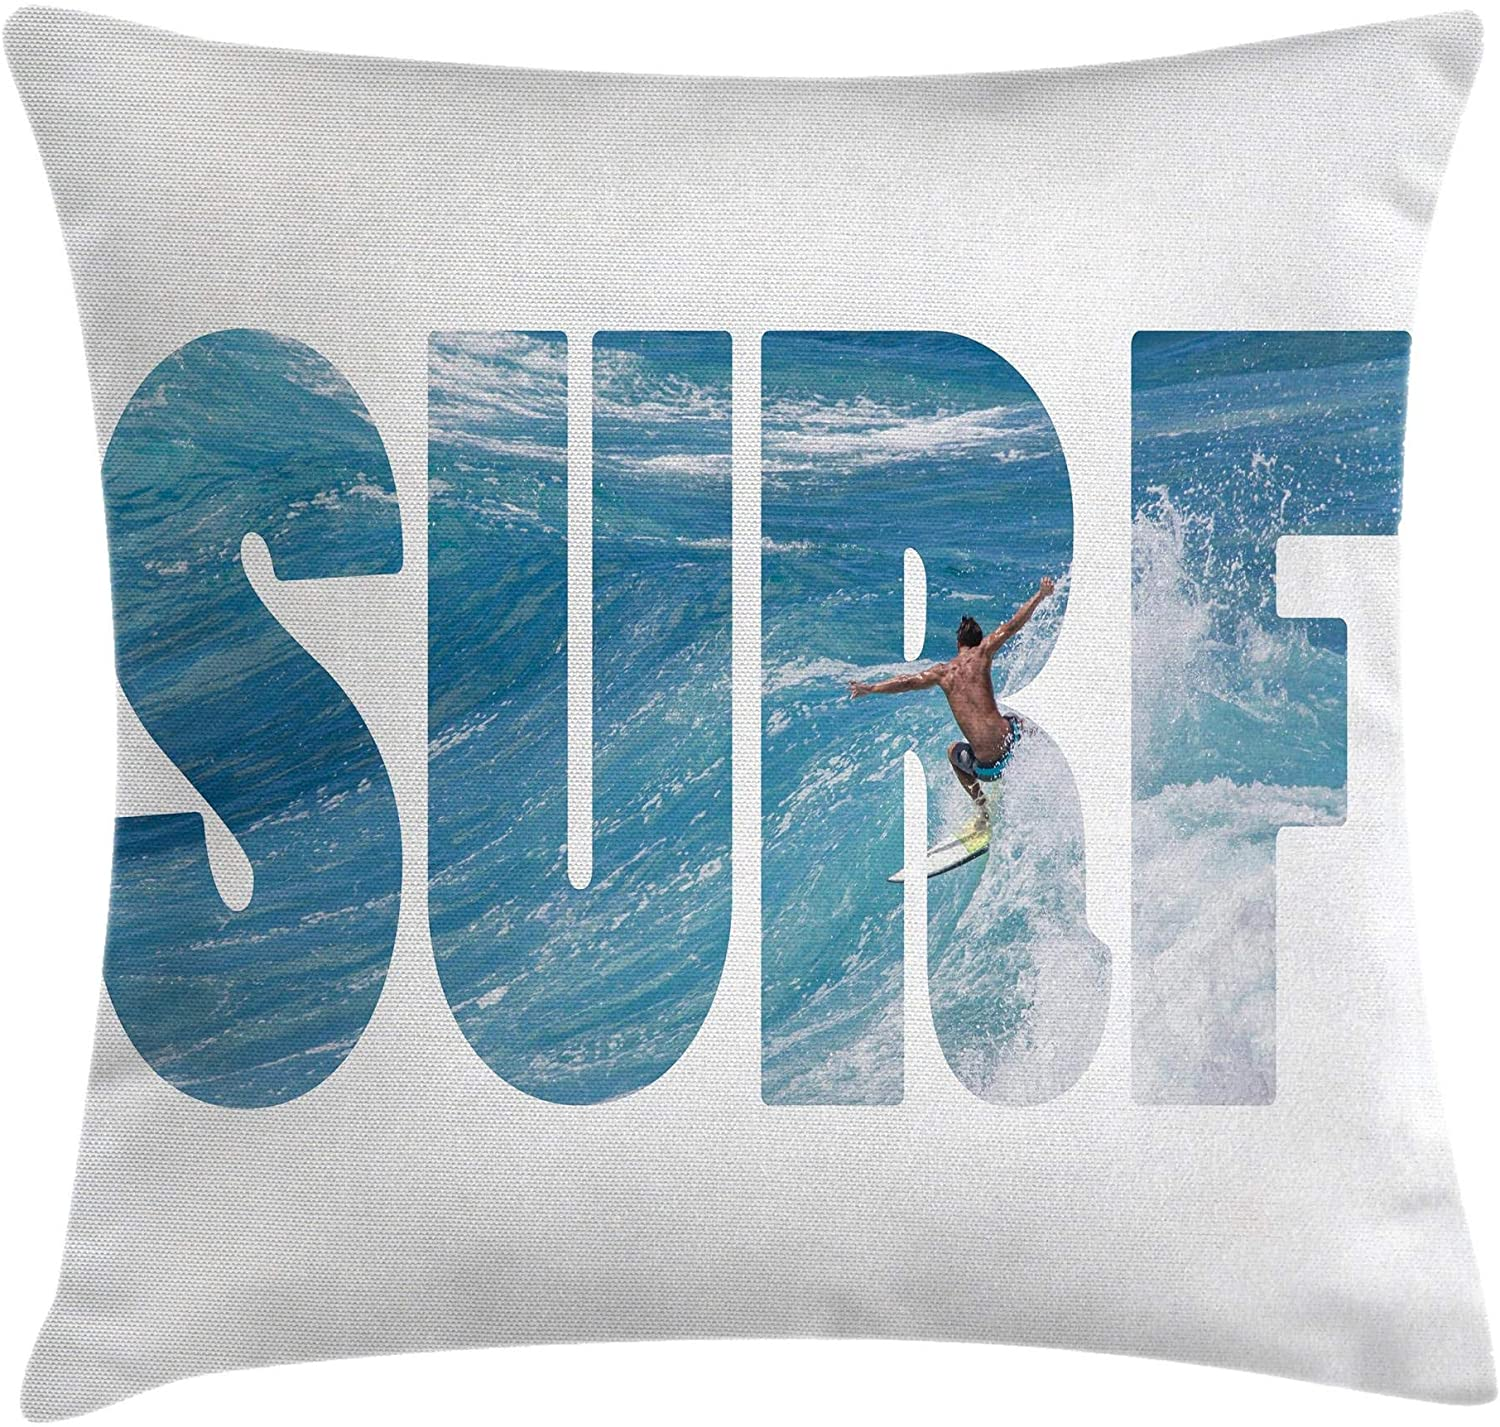 Ambesonne Surf Throw Pillow Cushion Cover, Surfer Riding Giant Majestic Ocean Wave in Hawaii Adrenalin Epic Athlete Sea Pacific, Decorative Square Accent Pillow Case, 18